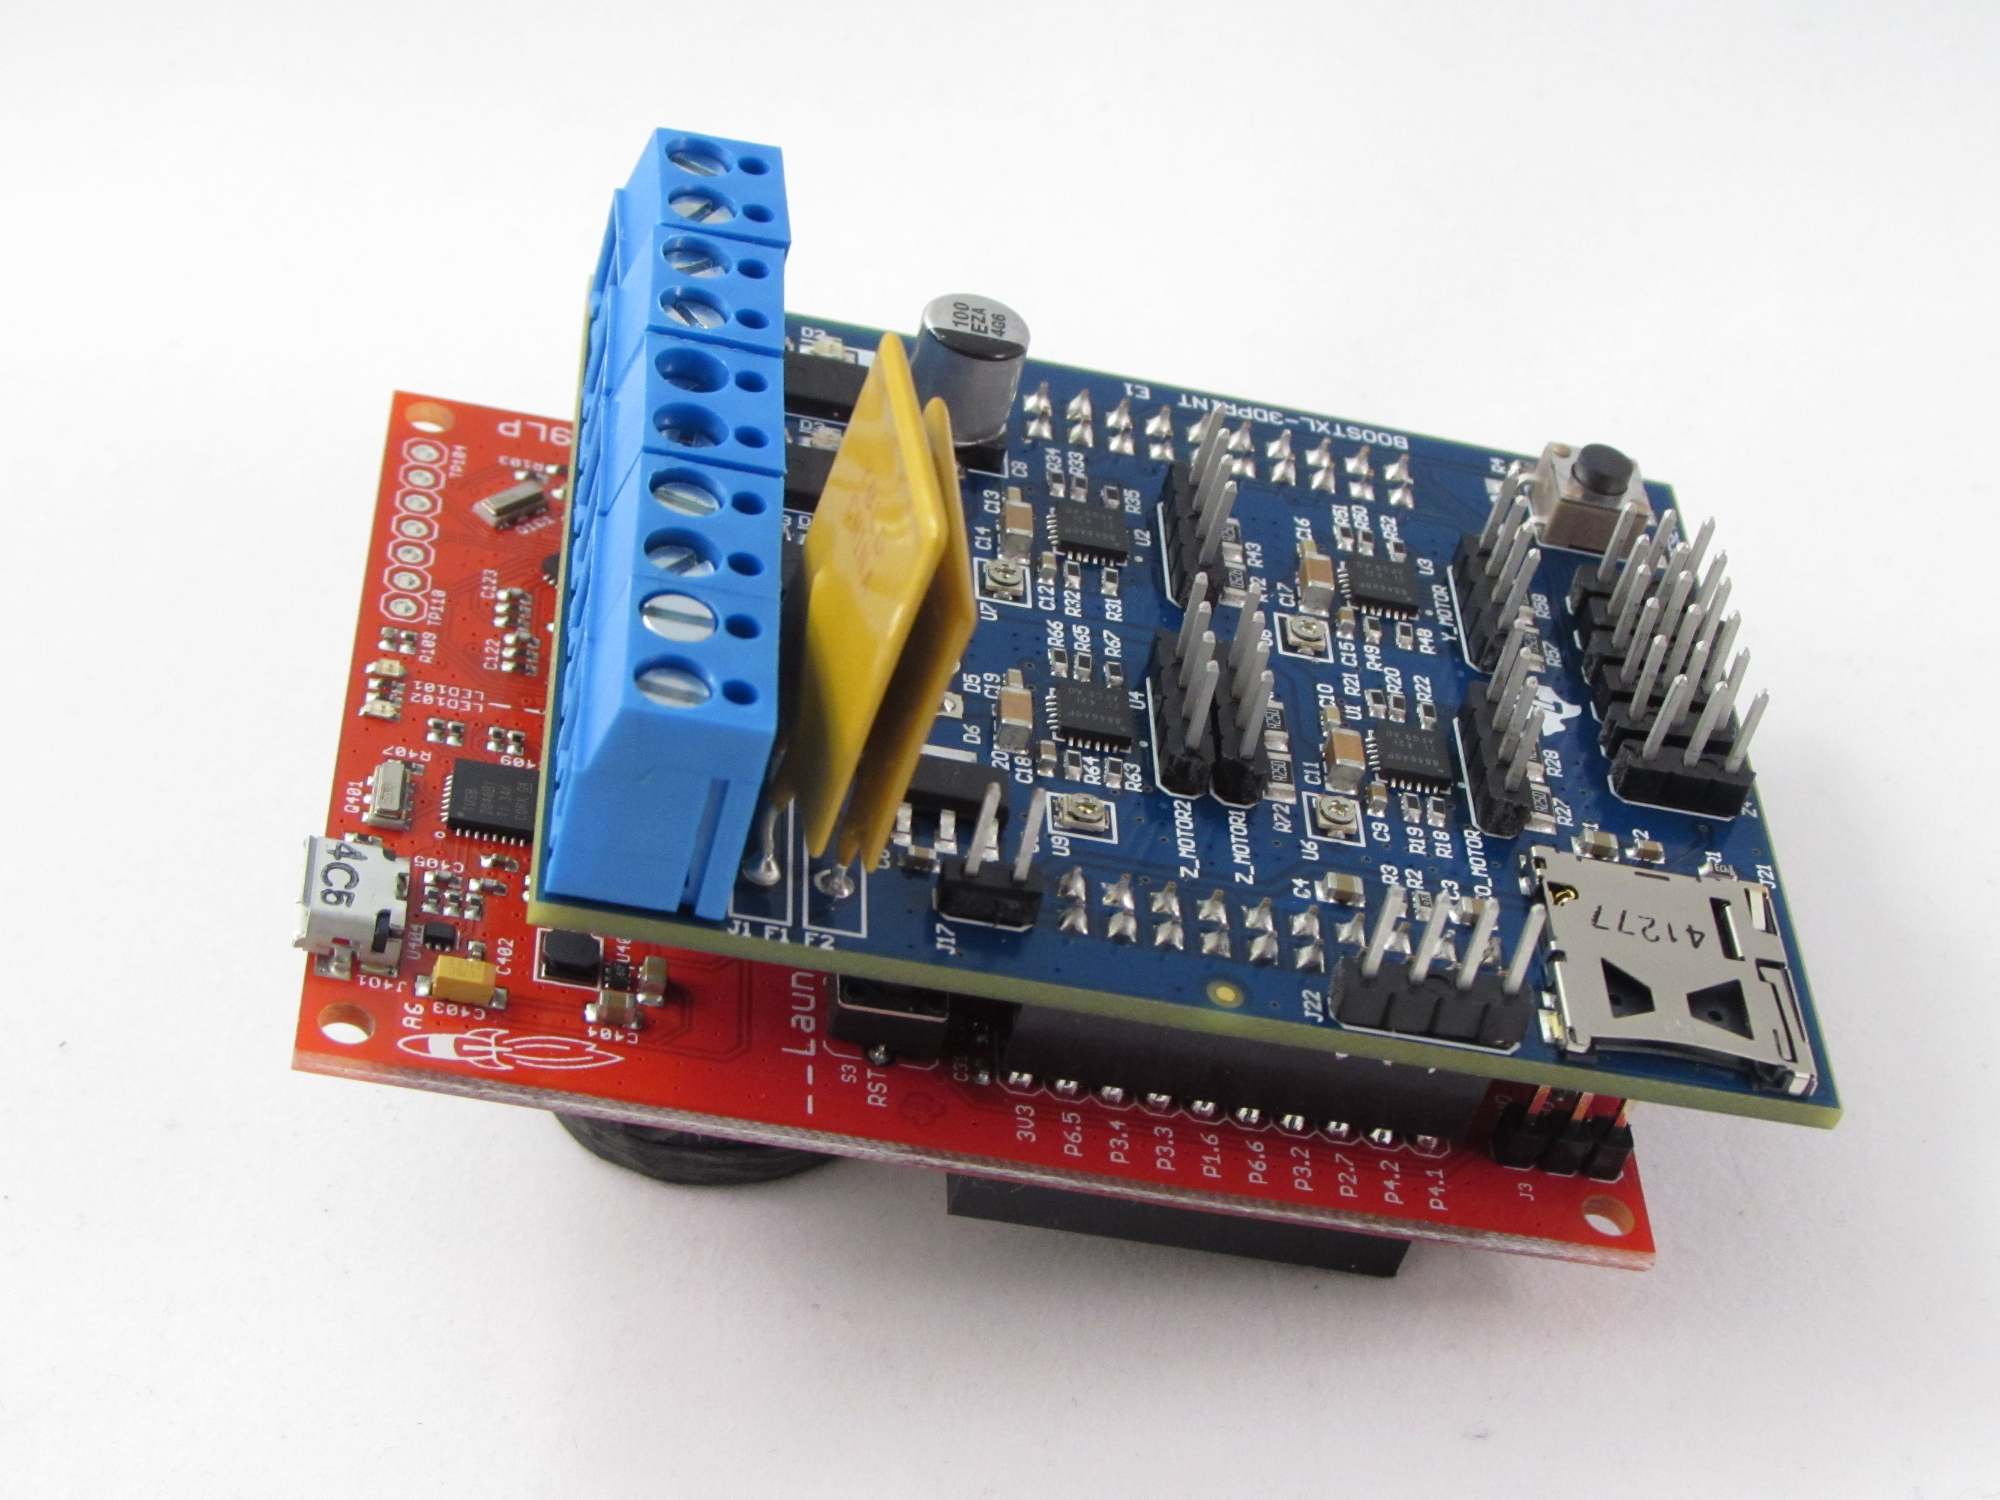 Under The Hood Of A 3 D Printer Part 1 Motor Drive Control To Make Printed Circuit Board Using Diode Laser With 3d Tida 00405 Reference Design